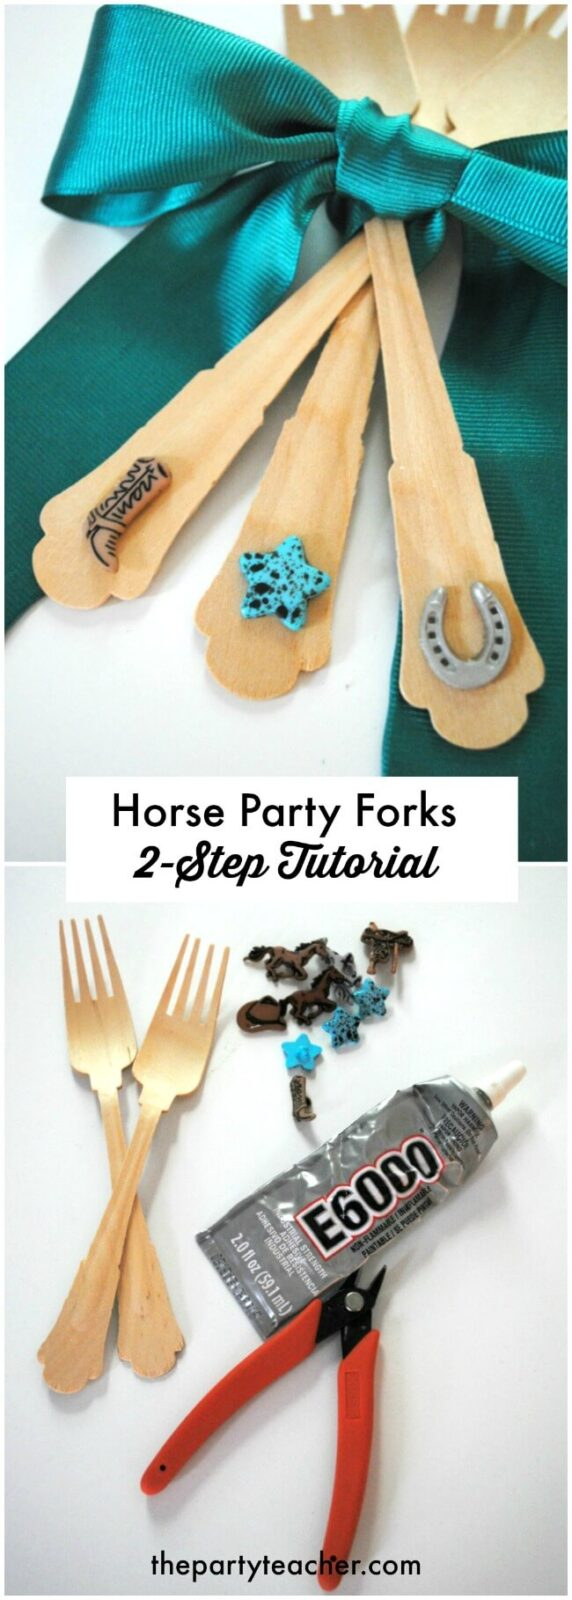 How to decorate forks for a horse party - easy 2-step tutorial by The Party Teacher